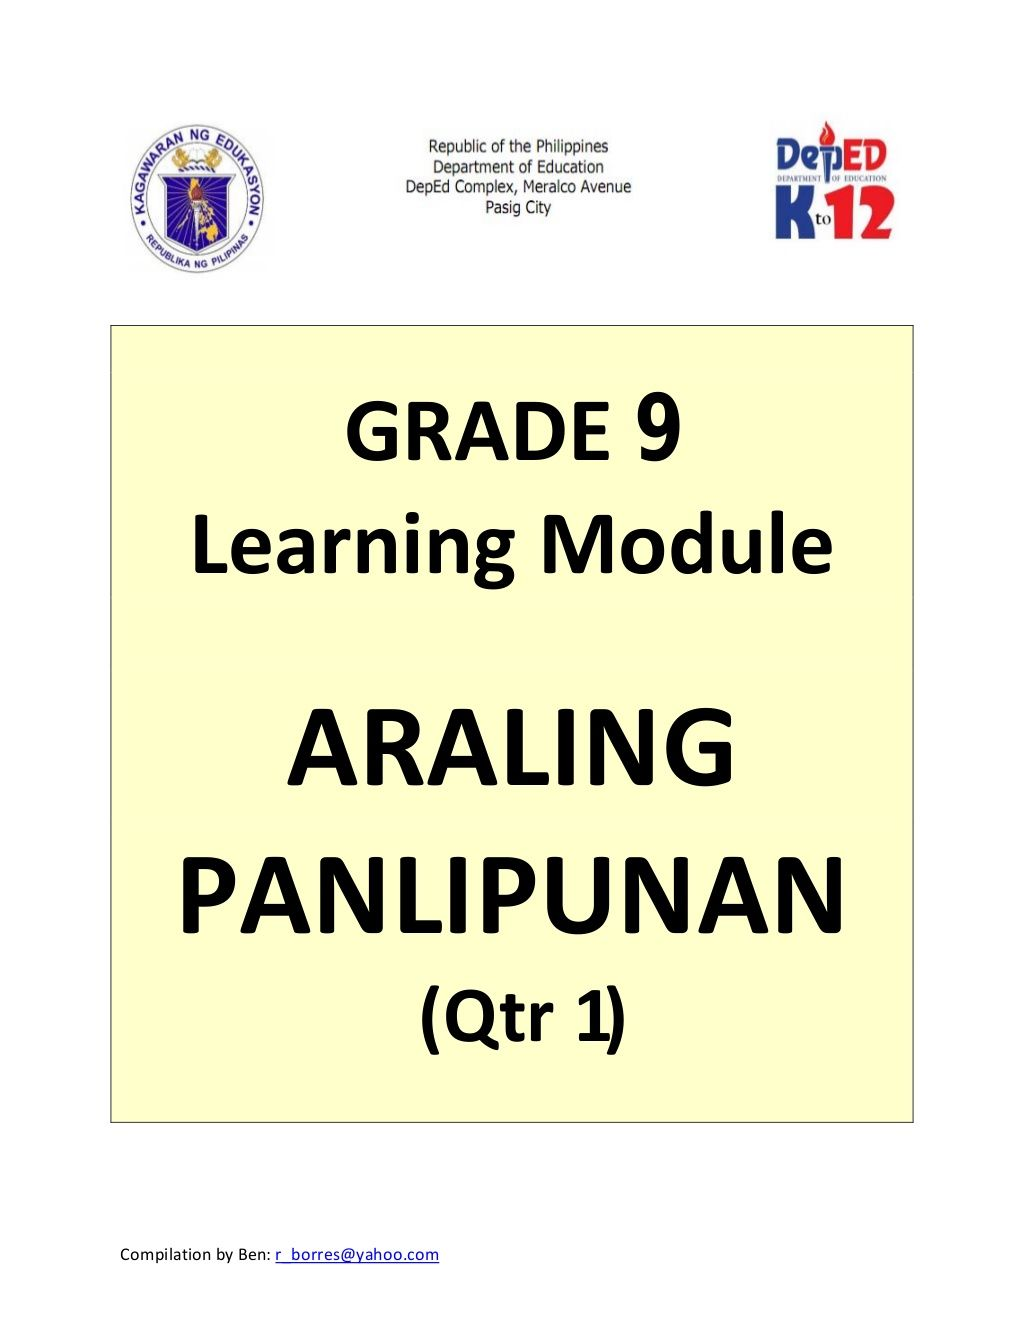 hight resolution of Grade 9 Learning Module in Araling Panlipunan - Quarter 1 only   High  school lesson plans